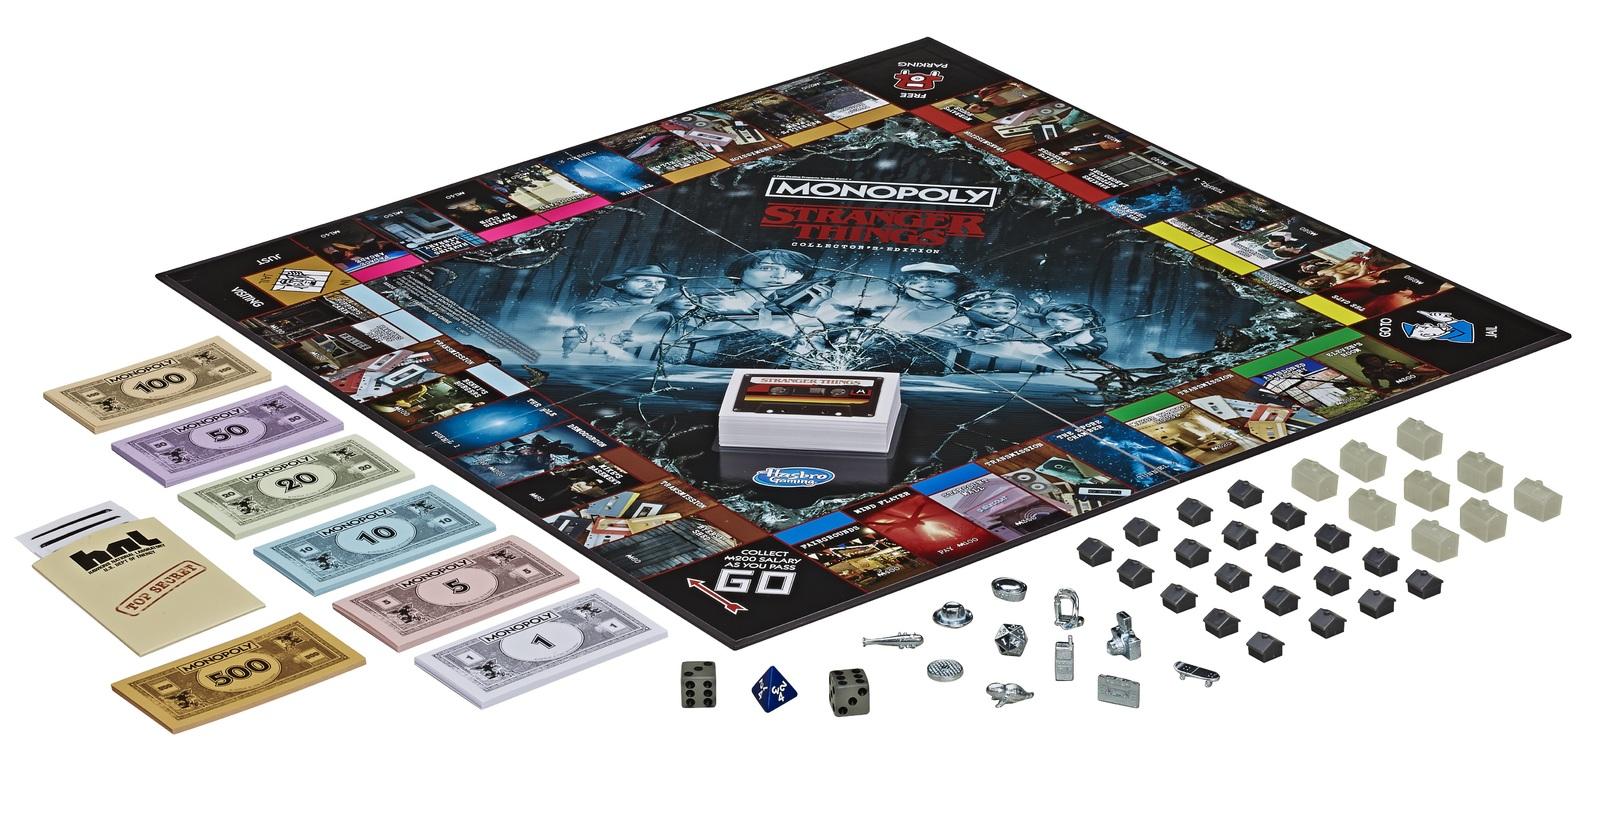 Monopoly: Stranger Things - Collector's Edition image